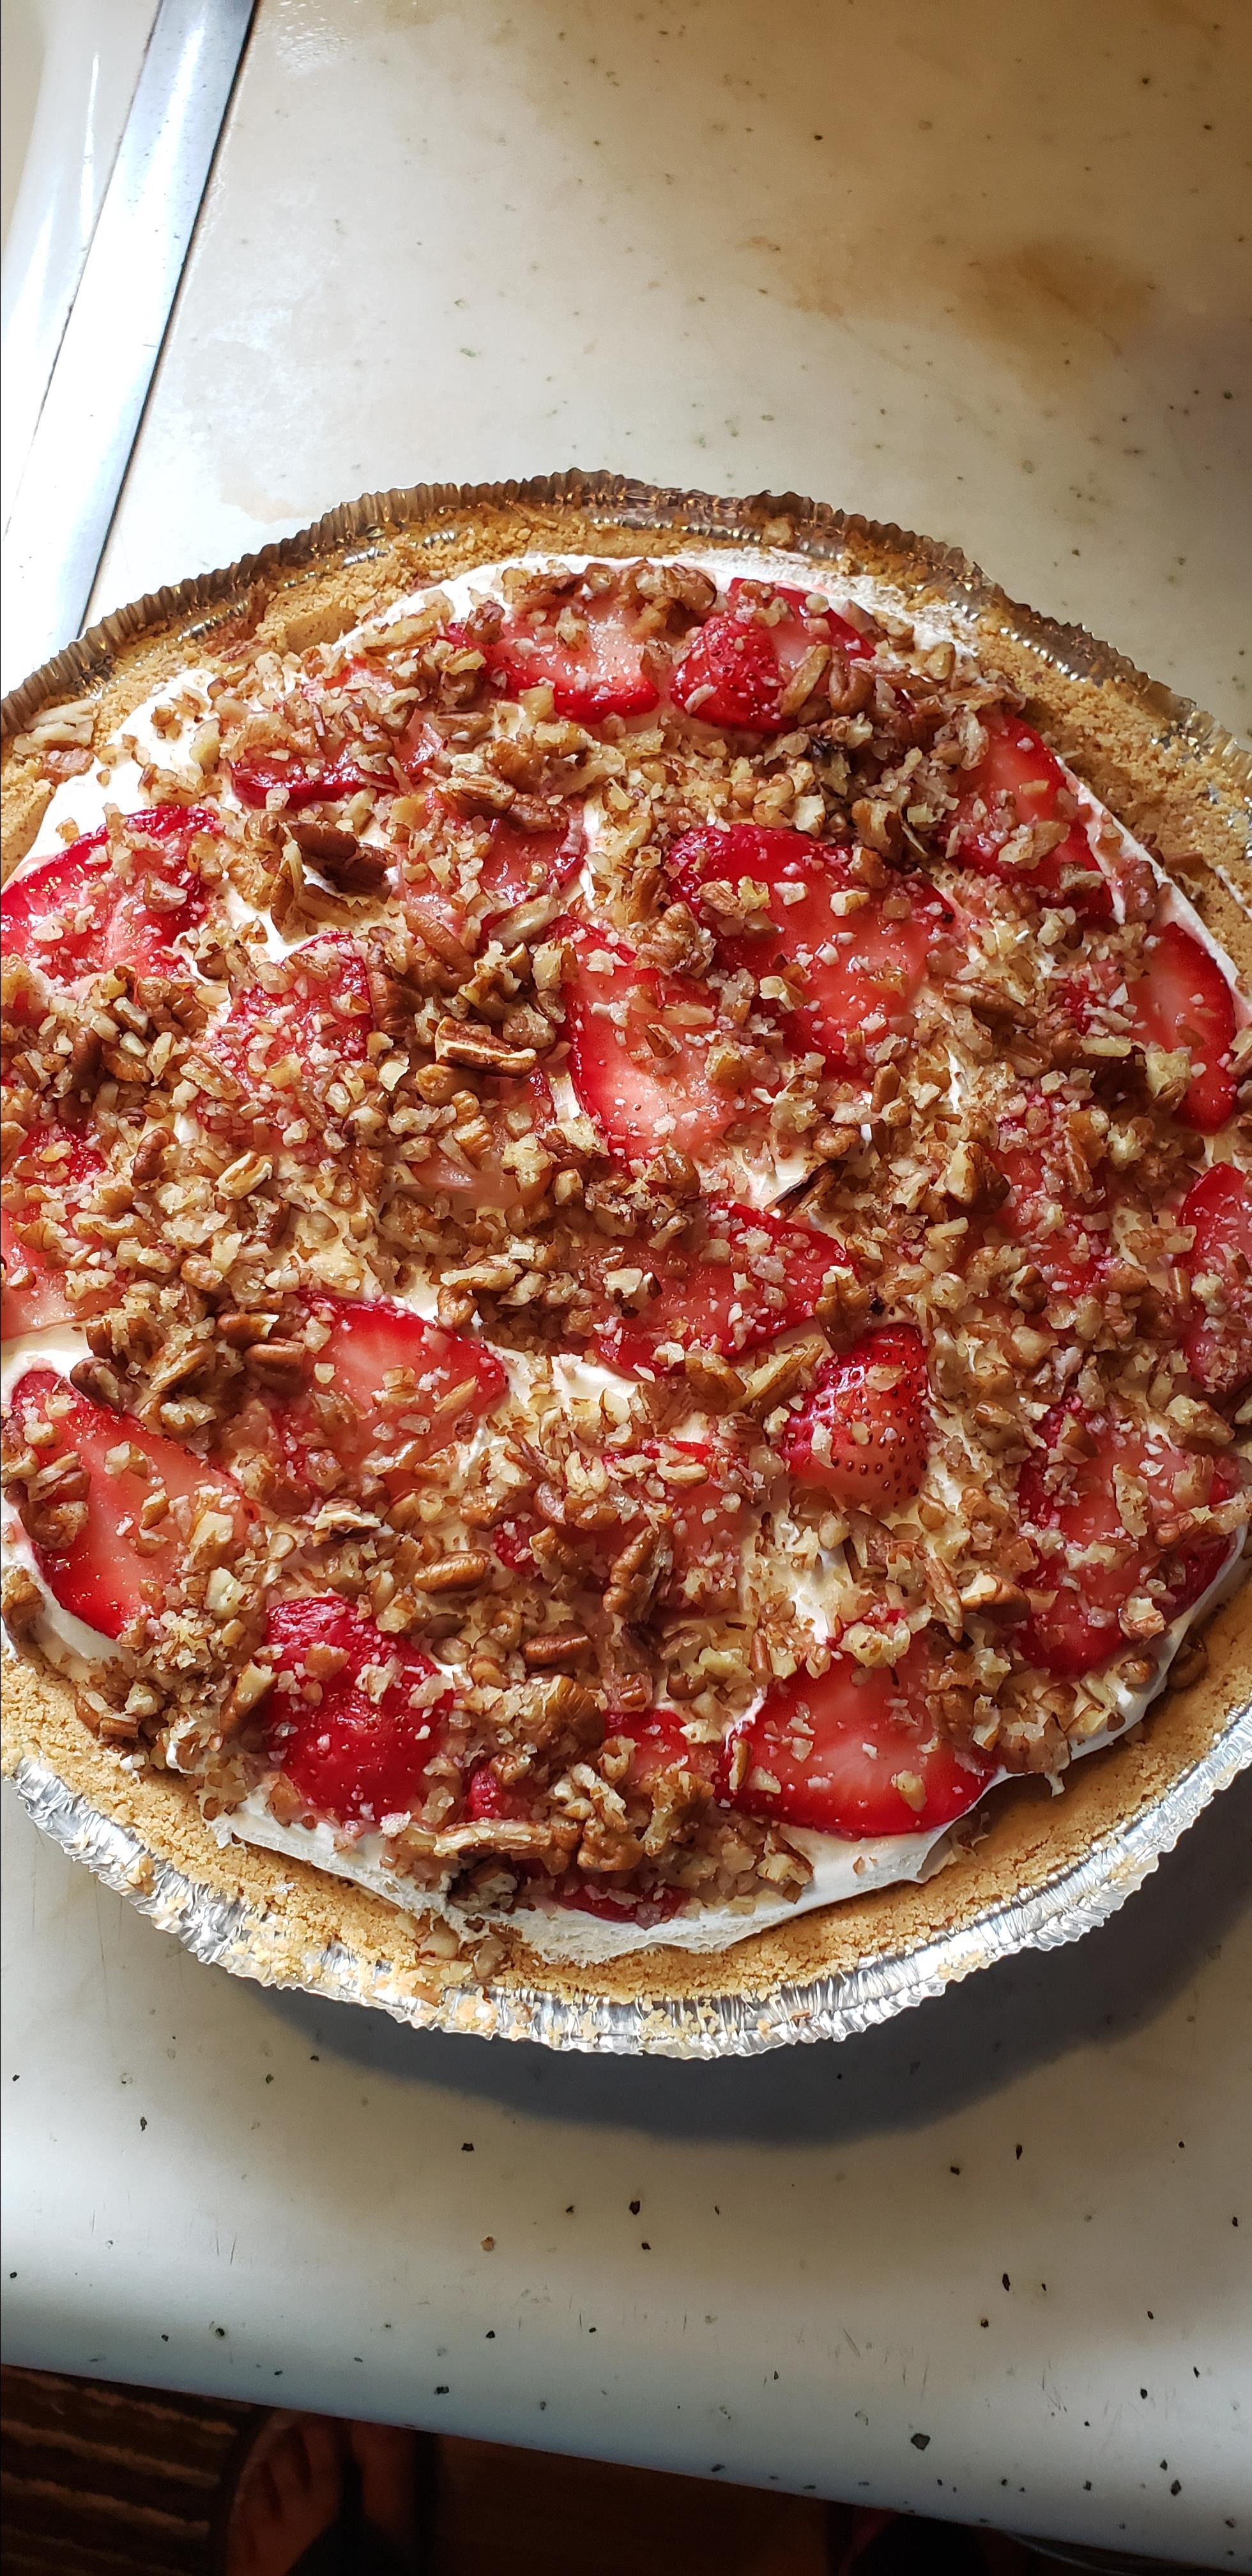 Strawberry Delight Pie Jenatta